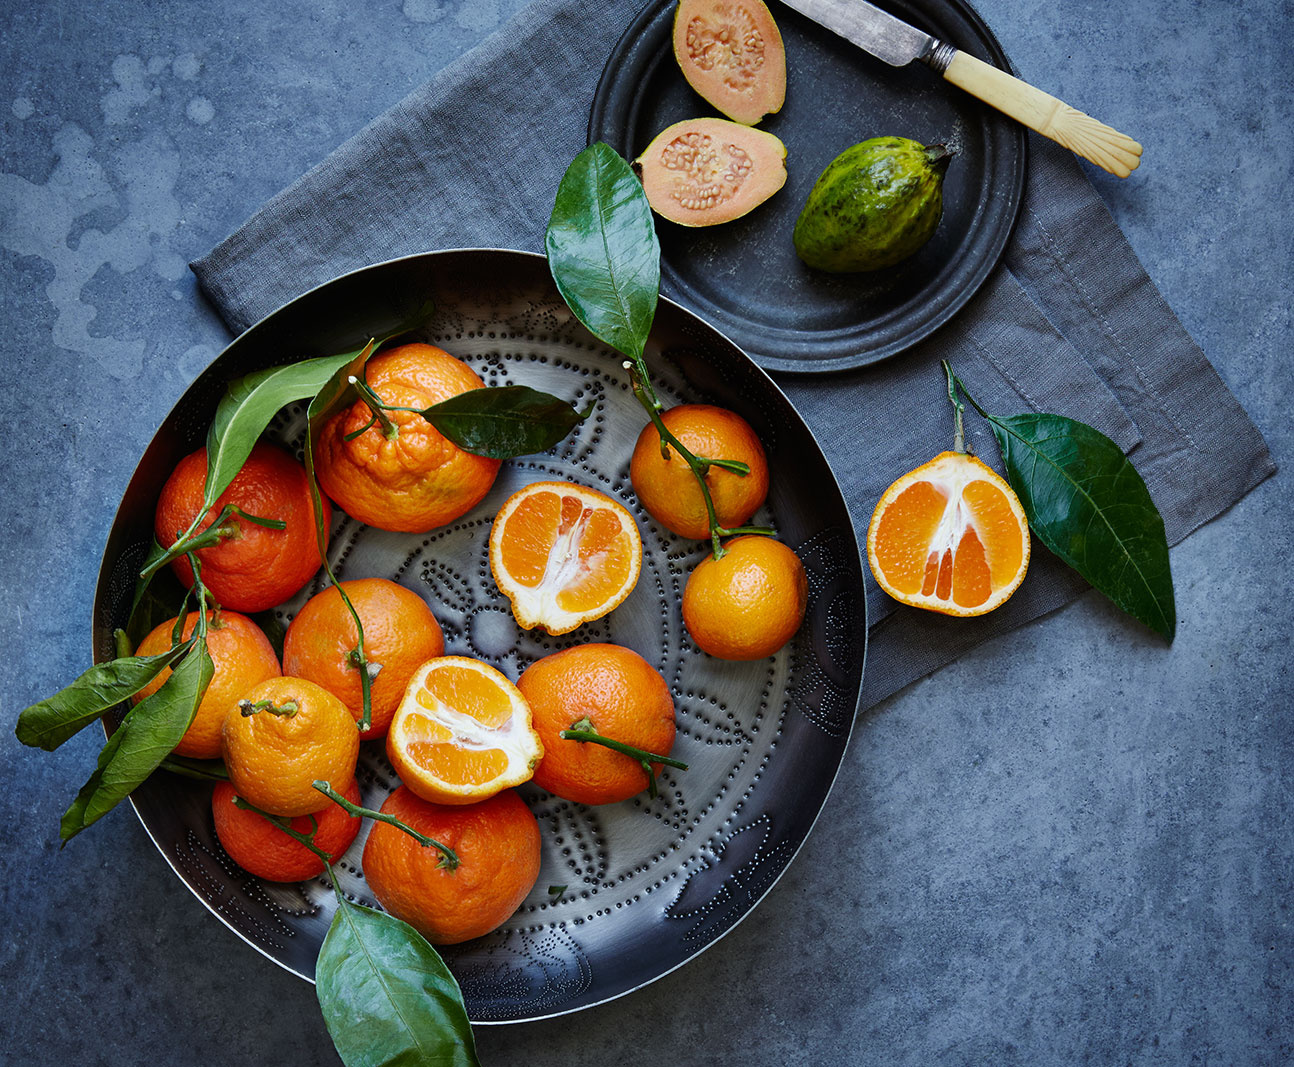 Oranges on concrete  | Trinette+Chris Photographers